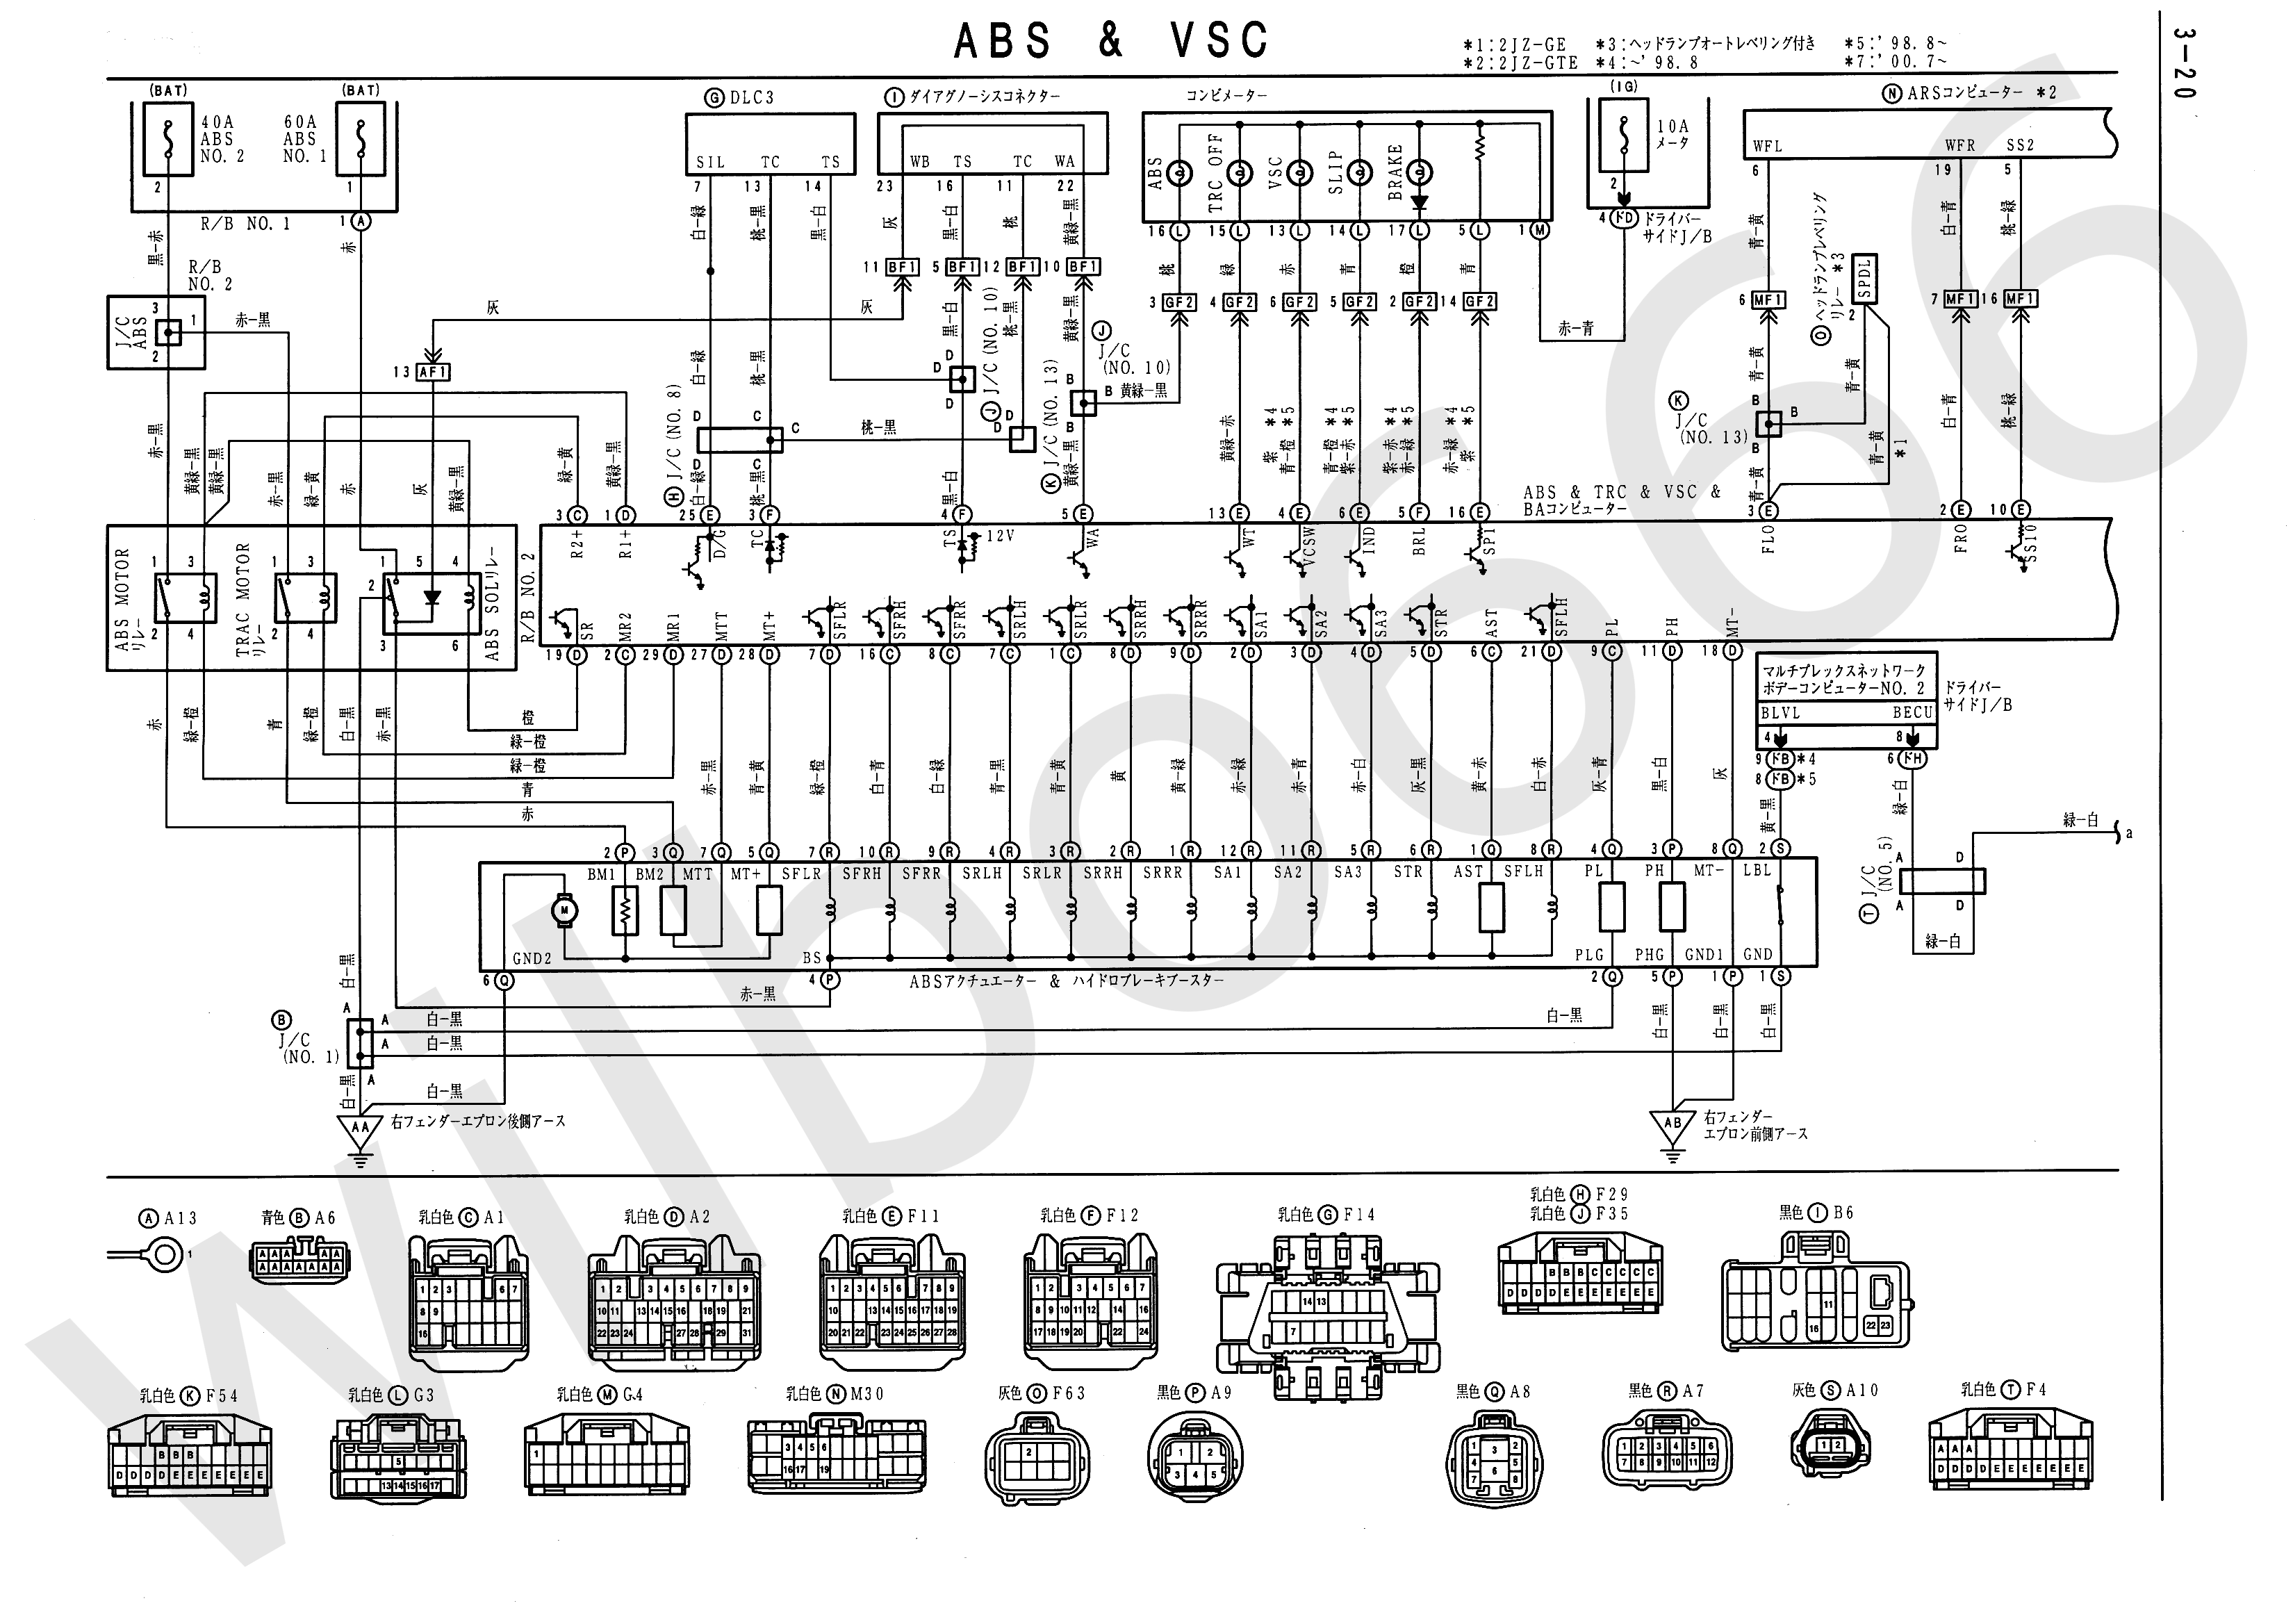 JZS161 Electrical Wiring Diagram 6748505 3 20?resize\\\\\\\\\\\\\\\\\\\\\\\\\\\\\\\\\\\\\\\\\\\\\\\\\\\\\\\\\\\\\\\\\\\\\\\\\\\\\\\\\\\\\\\\\\\\\\\\\\\\\\\=665%2C471 lennox furnace wiring diagram & solved wiring diagram for apex vdm wiring diagram at soozxer.org